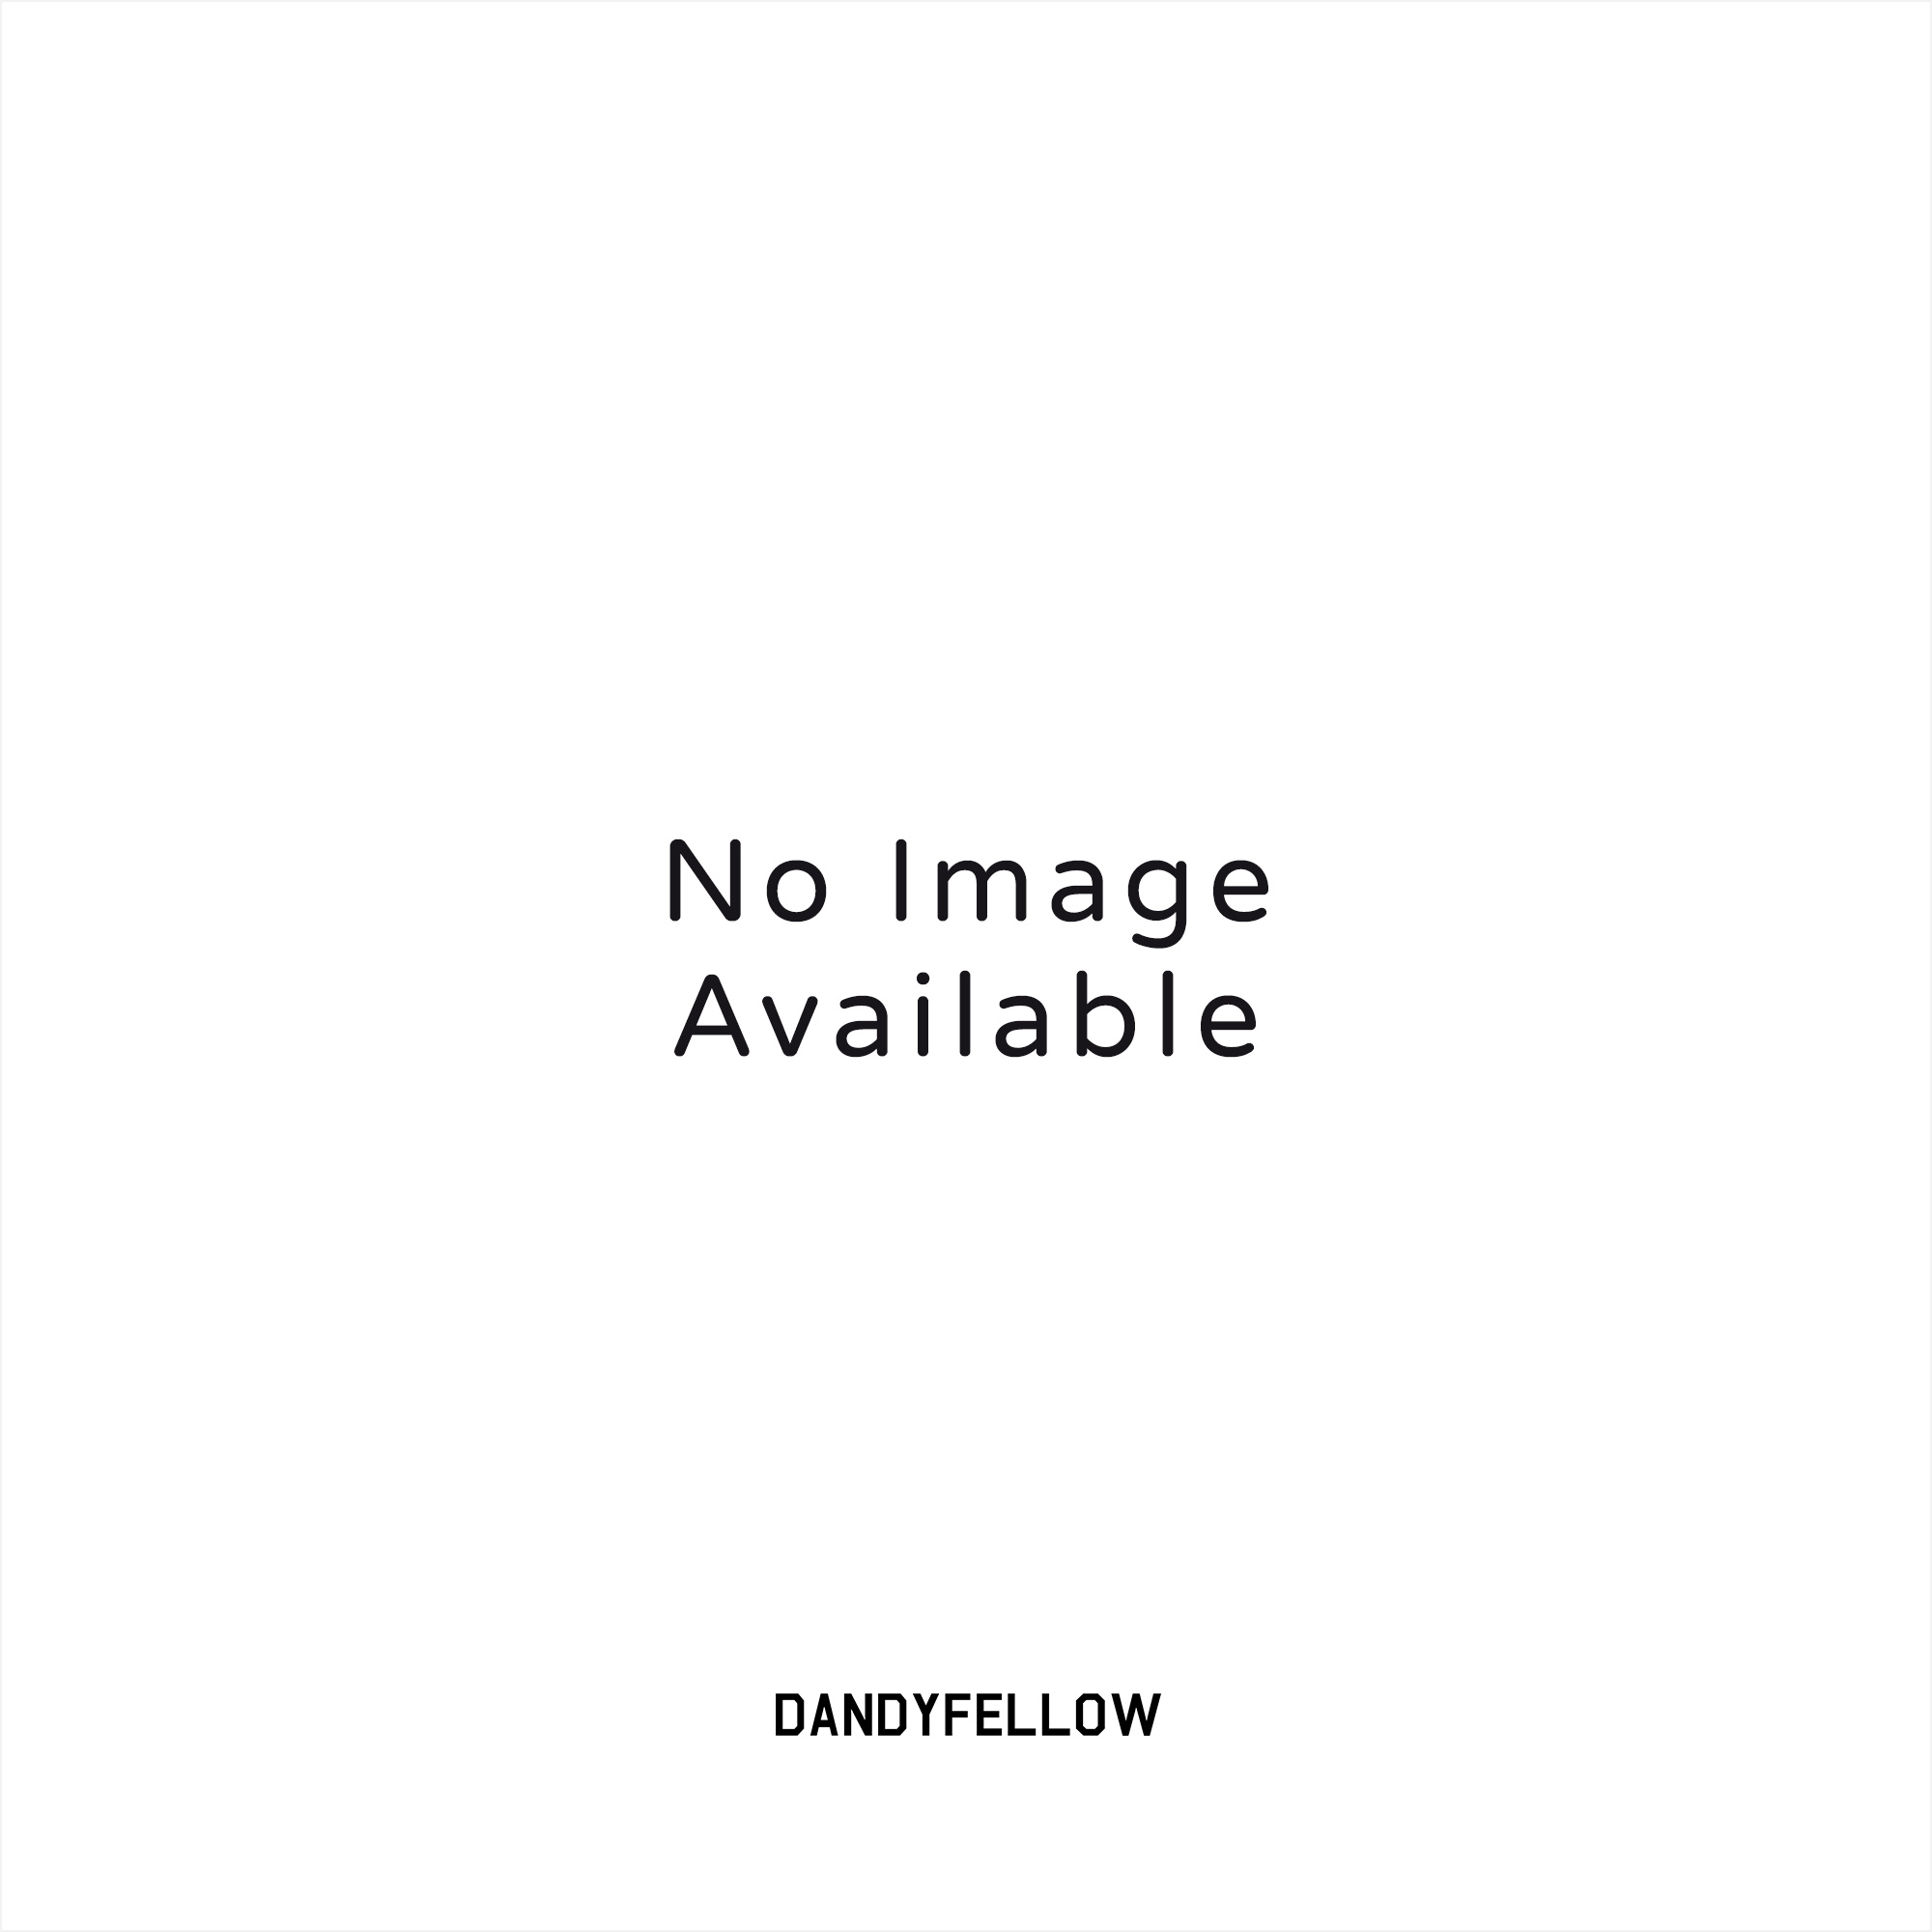 New Balance 999 Re-Engineered White Leather Shoe MRL999AH